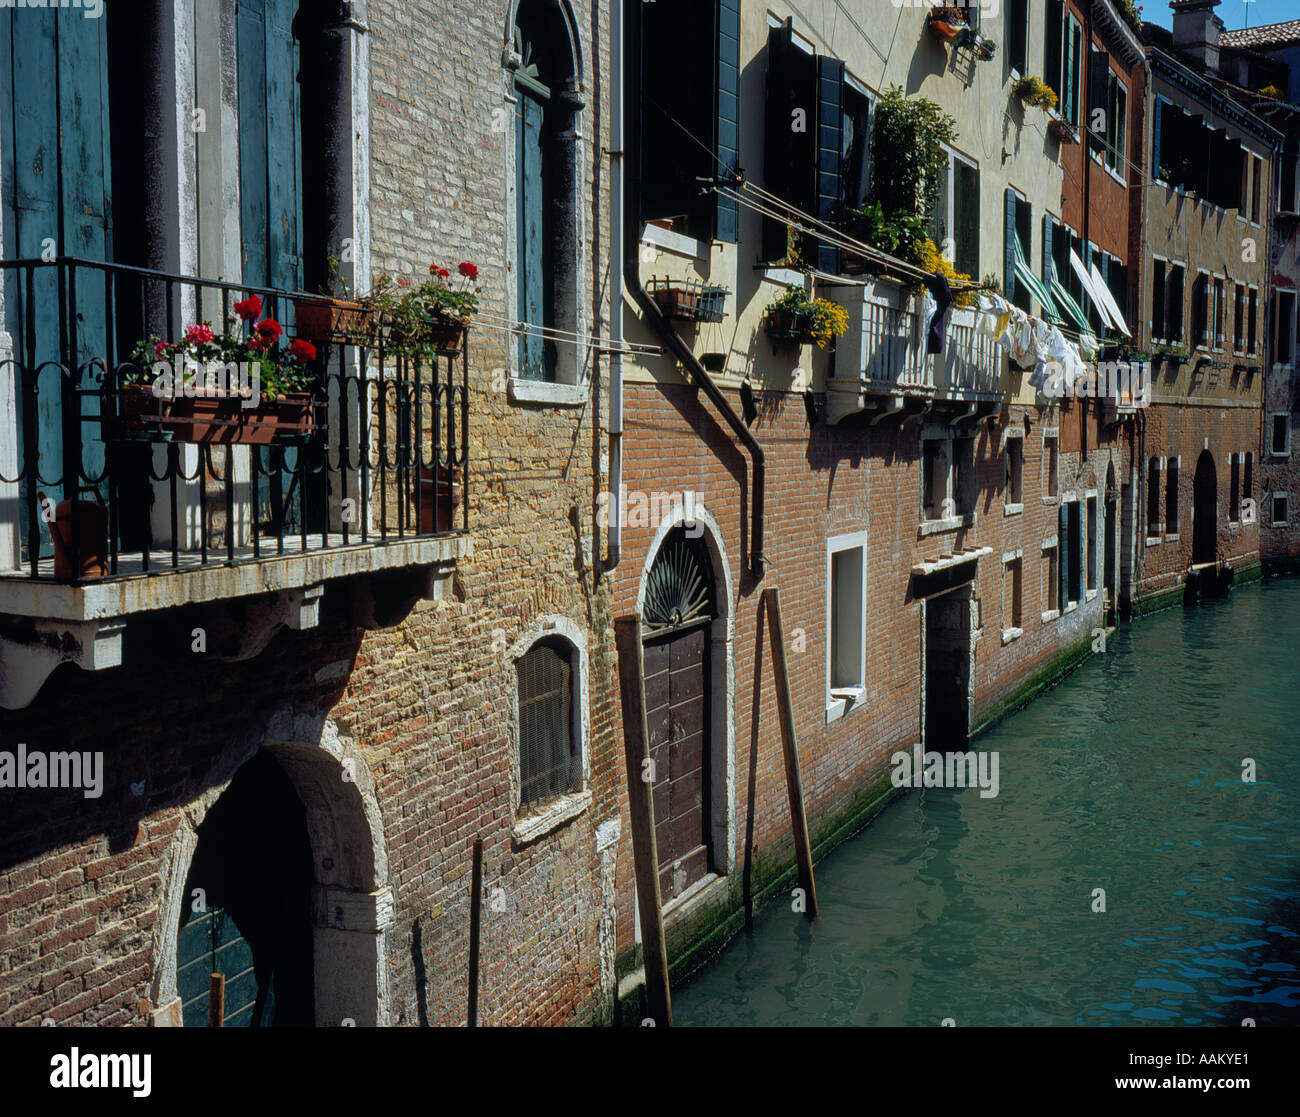 Canal in Venice Italy Europe. Photo by Willy Matheisl Stock Photo